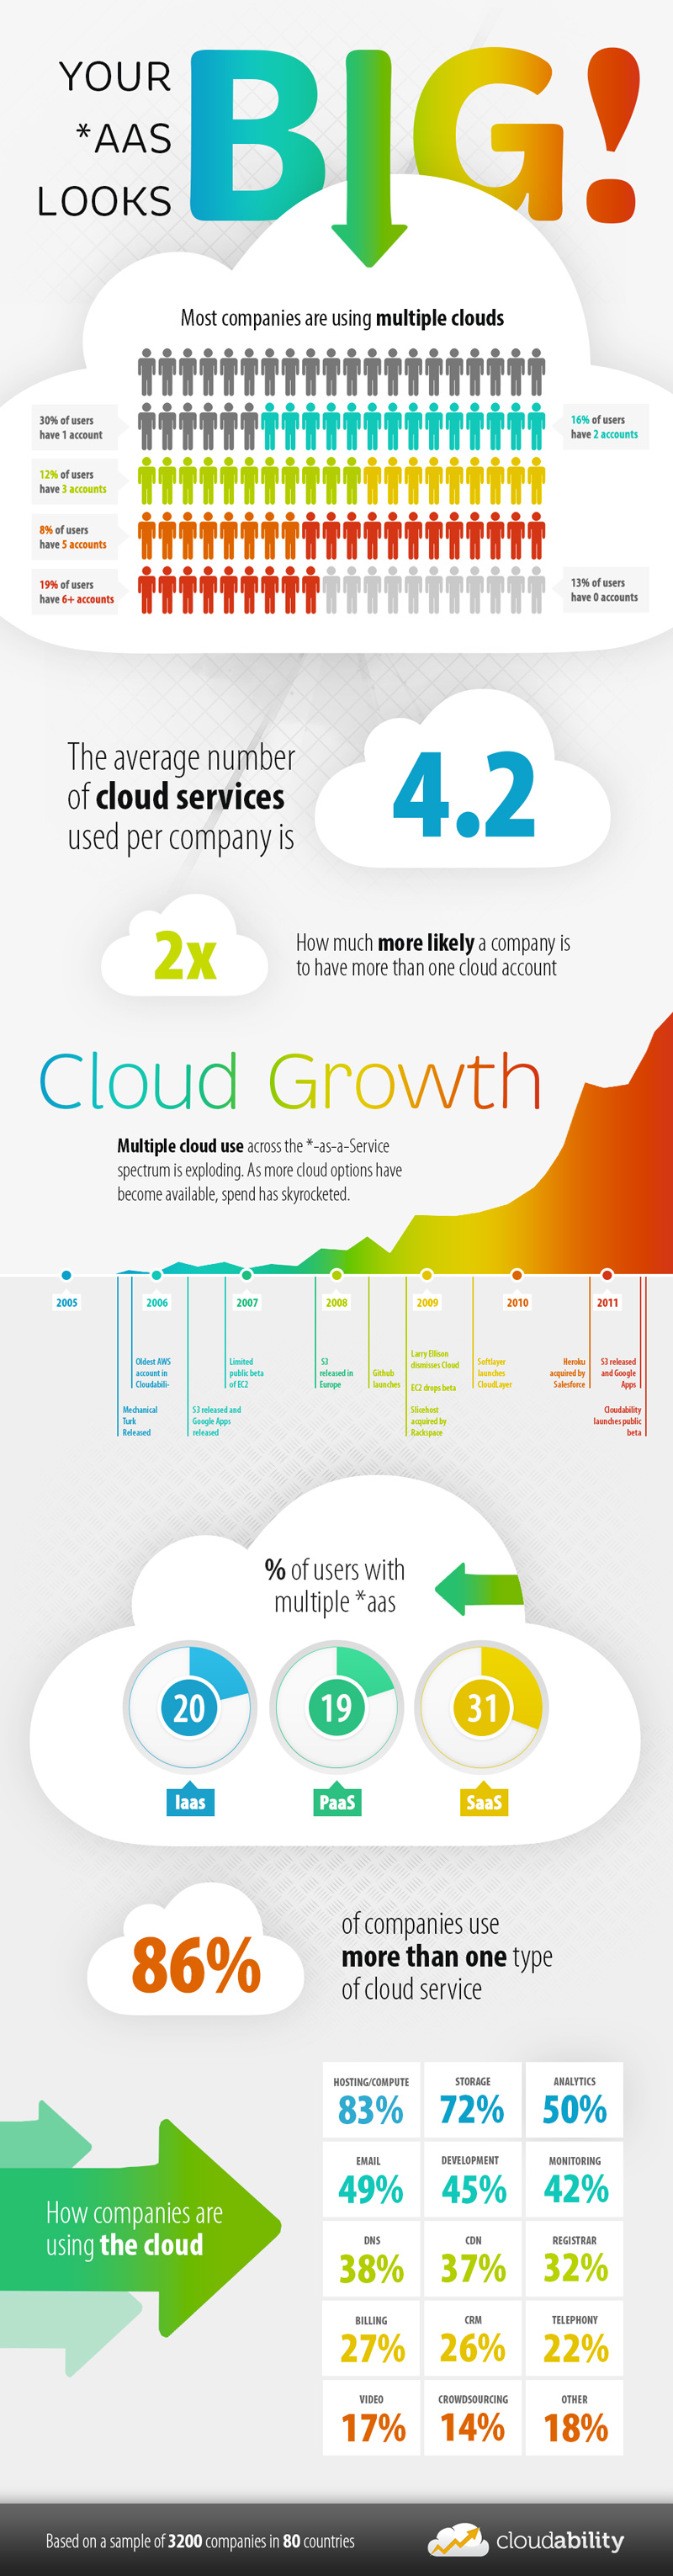 How companies use the cloud